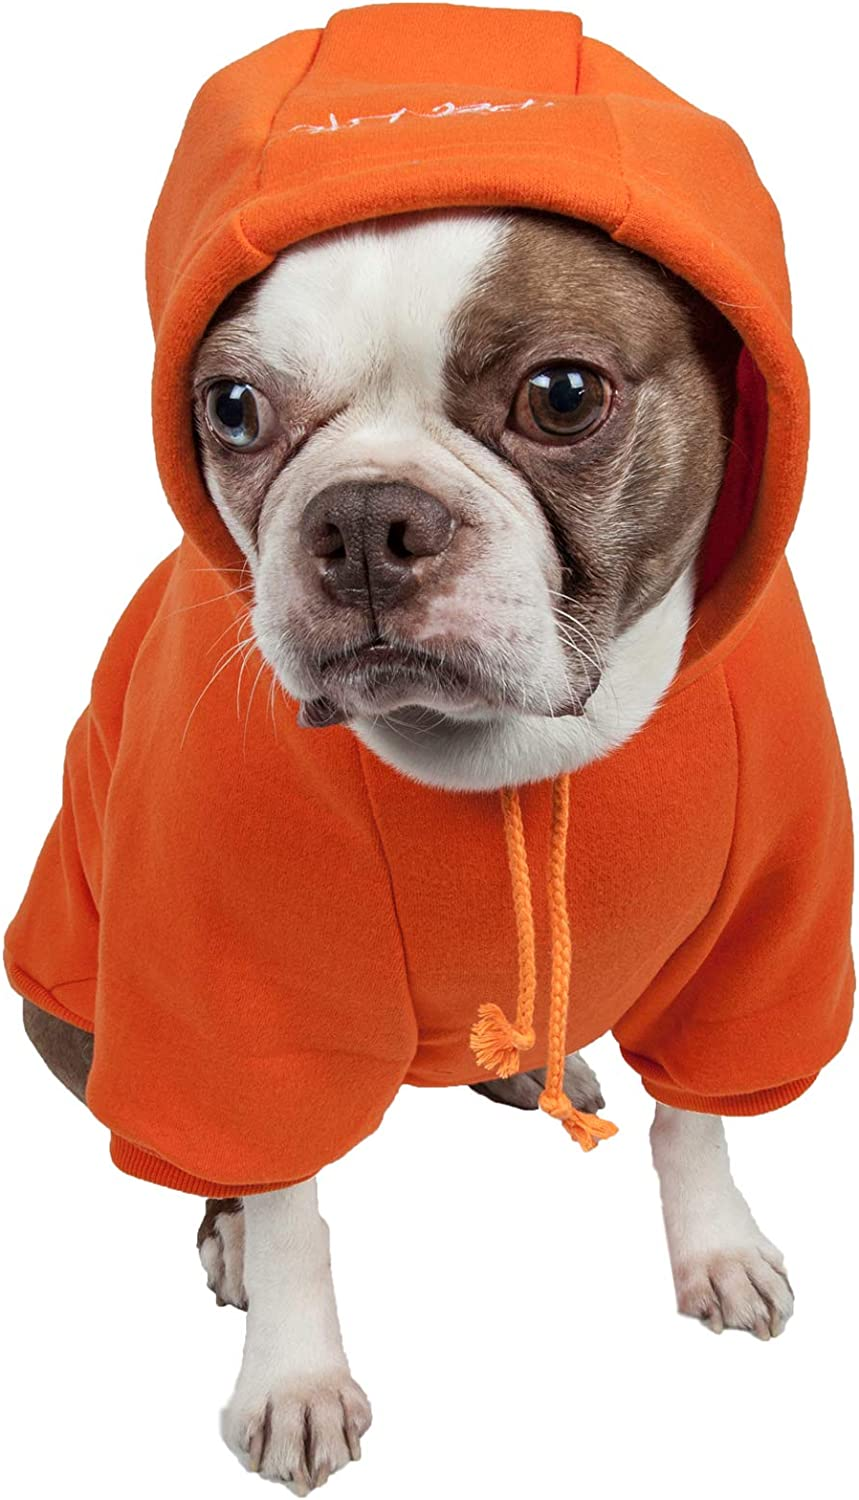 PET LIFE 'American Classic' Designer Fashion Plush Cotton Pet Dog Hooded Sweater Hoodie, XSmall, orange